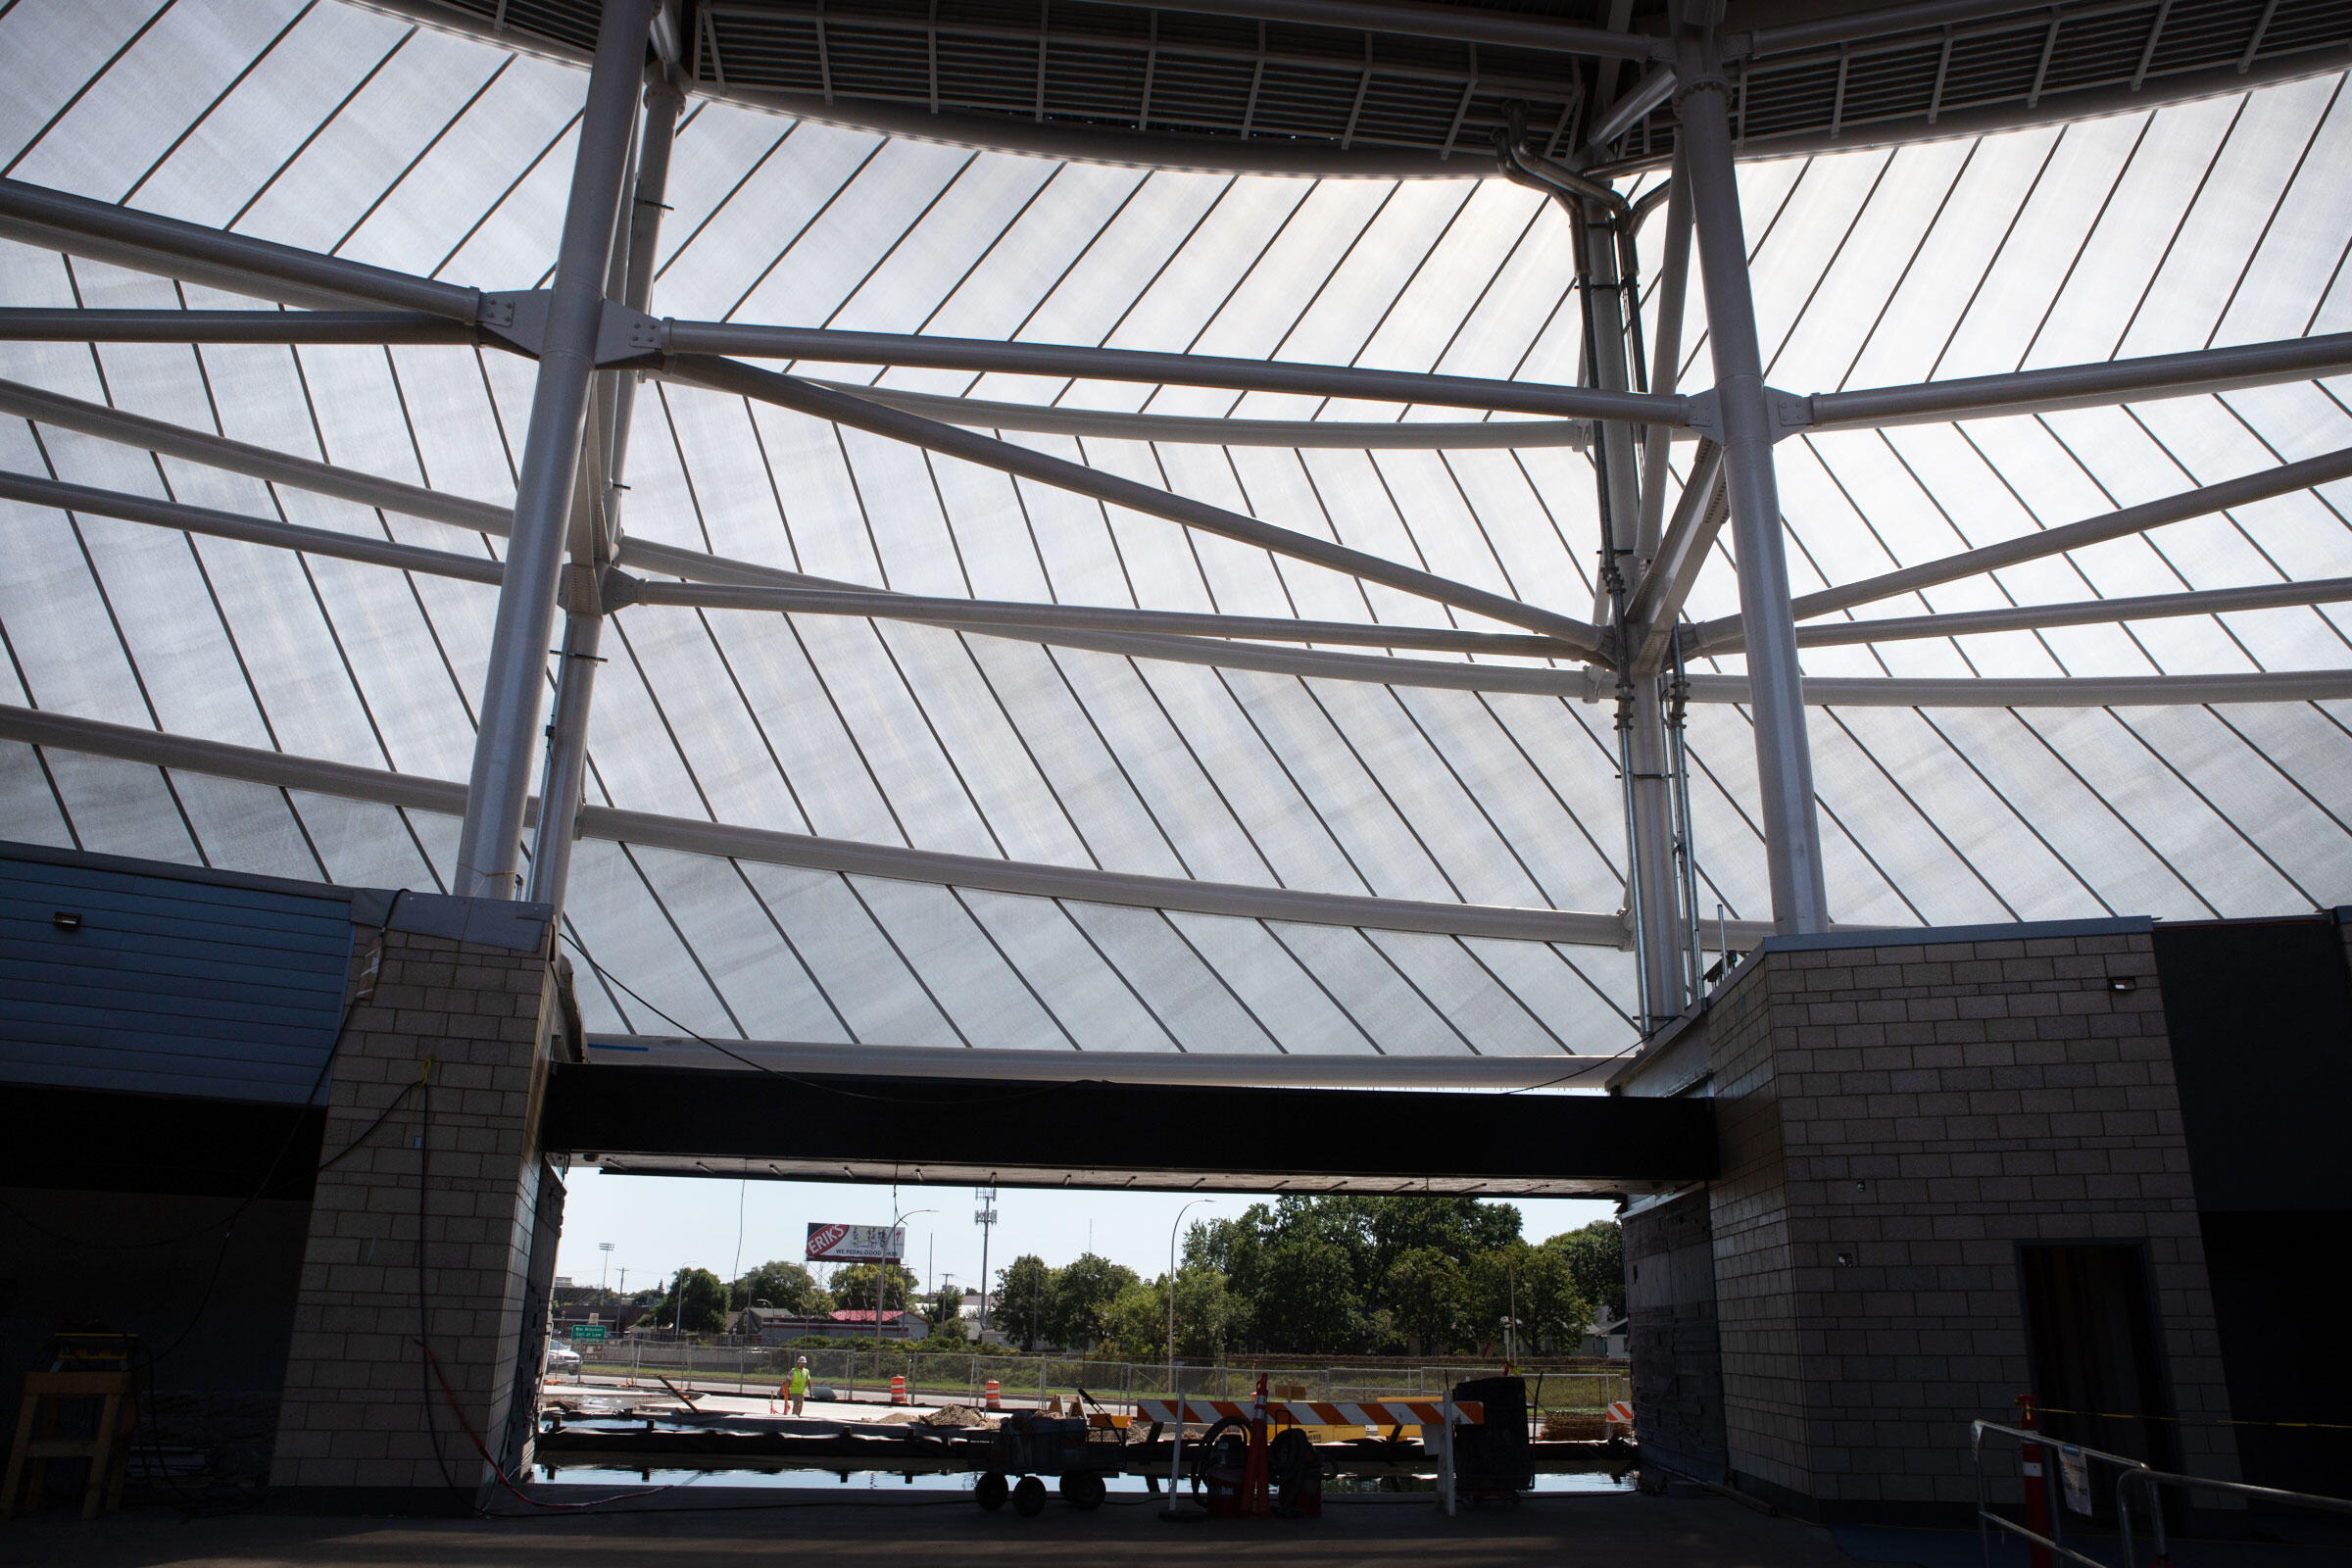 The exterior of Allianz Field is wrapped in polytetrafluoroethylene (PTFE), a versatile material with a wide variety of applications. Camilla Cerea/Audubon